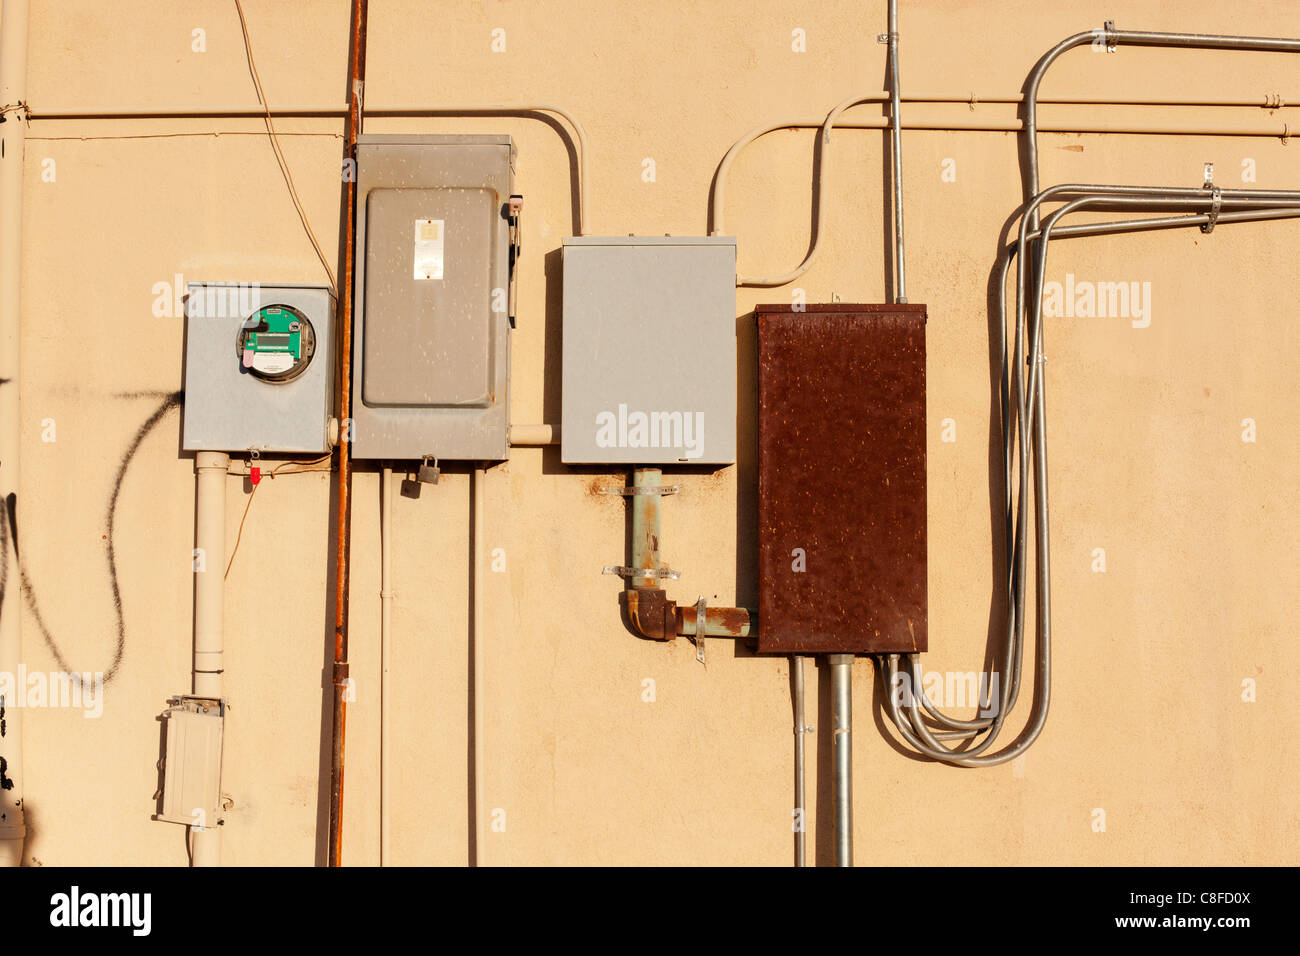 Electrical meter and fuse boxes on the side of a wall. - Stock Image